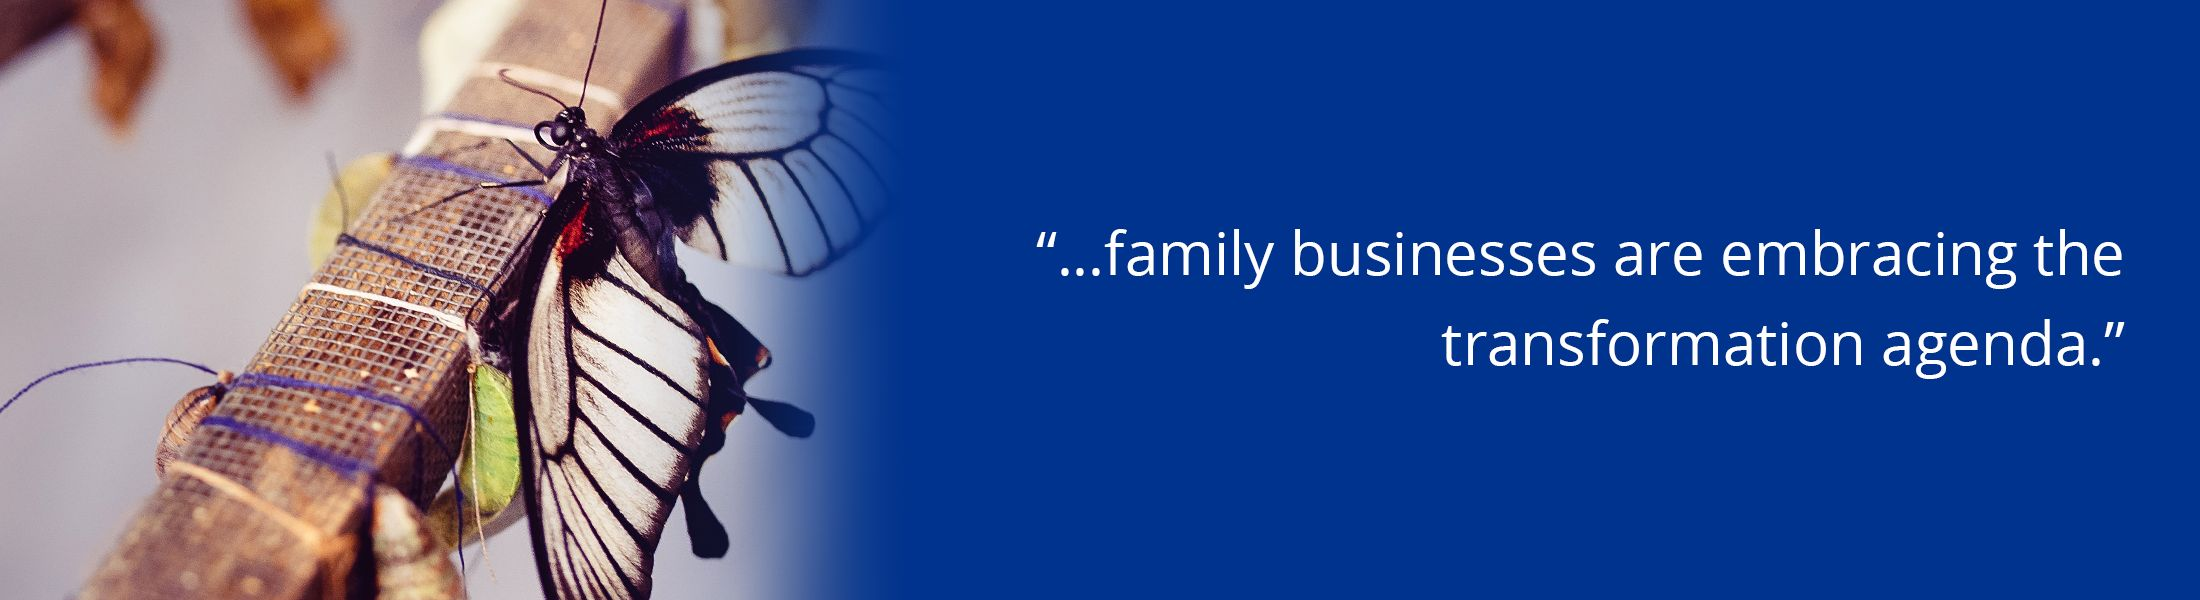 """overlaid text """"family businesses are embracing the transformation agenda"""""""